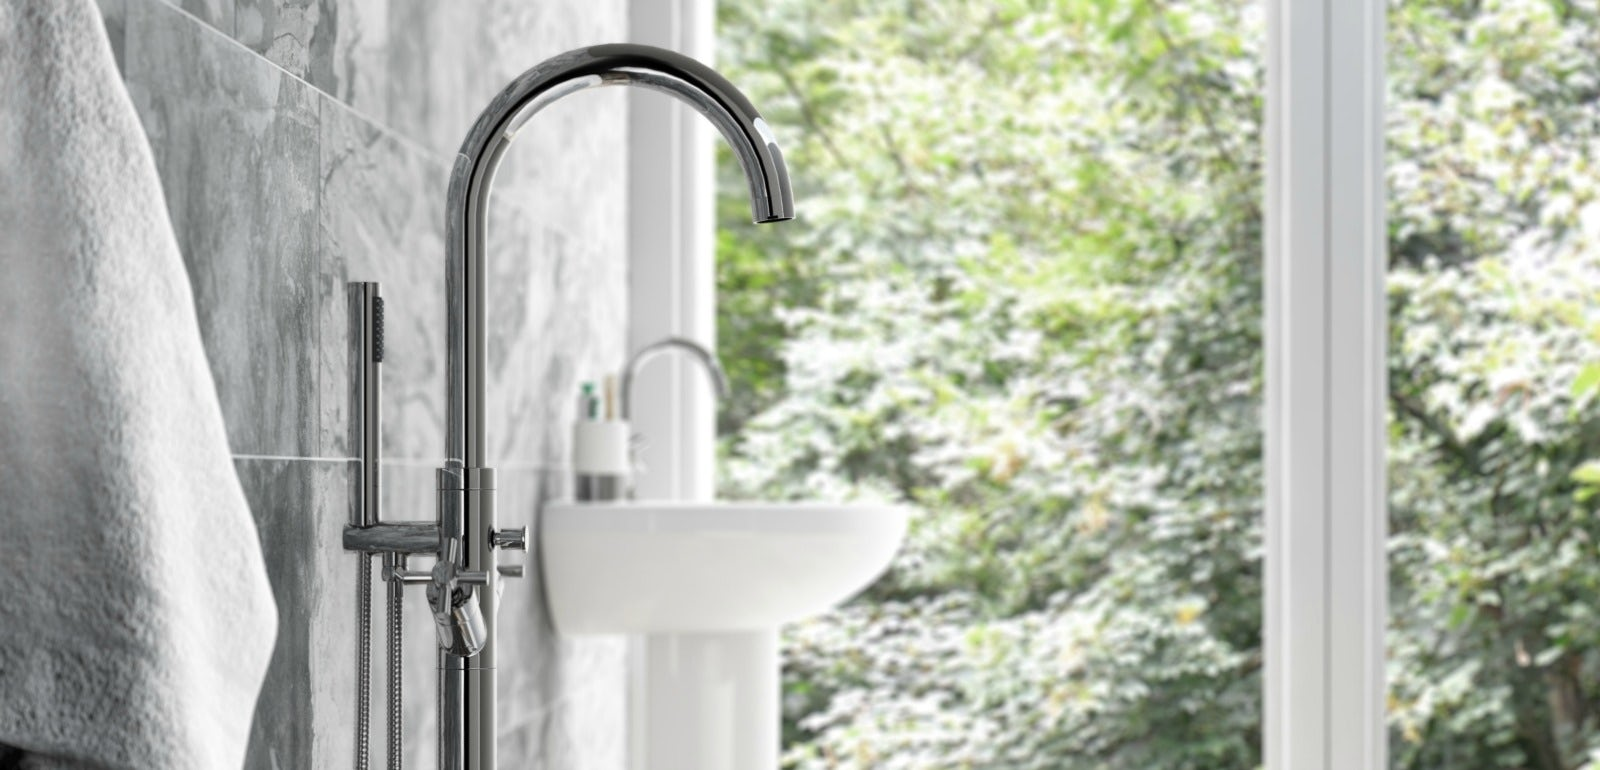 Bath Taps Buying Guide | VictoriaPlum.com